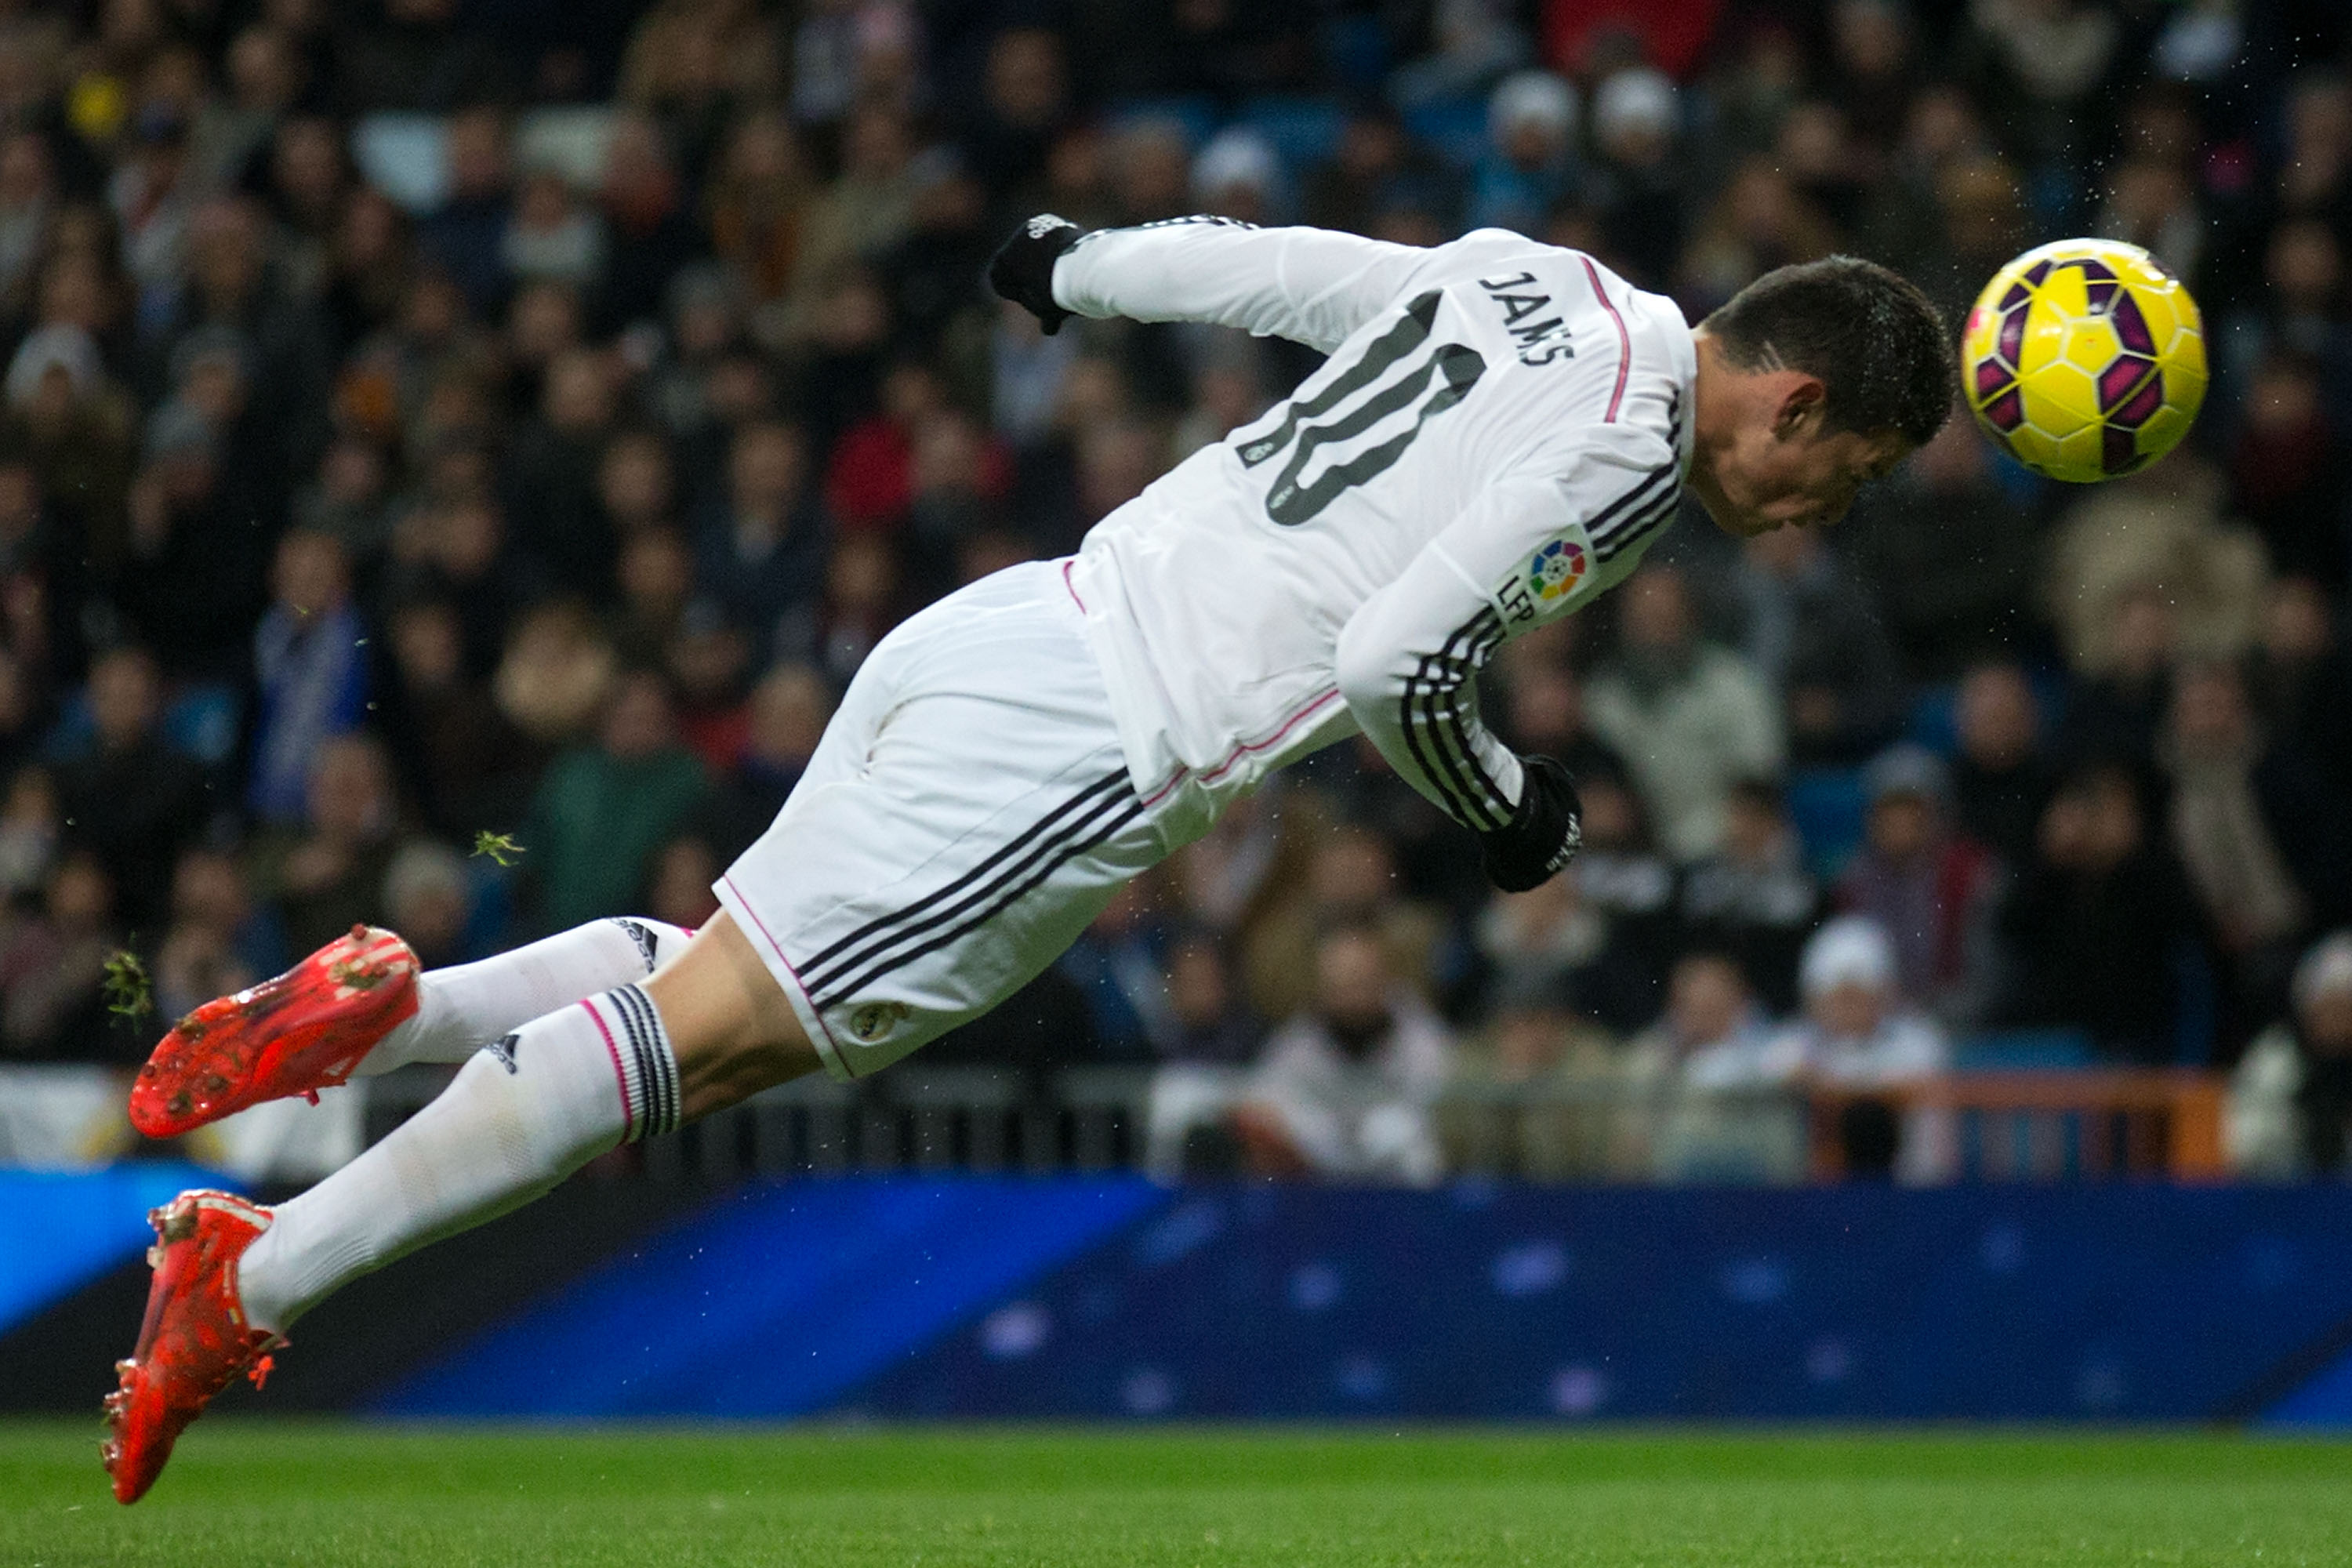 James Rodriguez to miss 2 months with broken foot